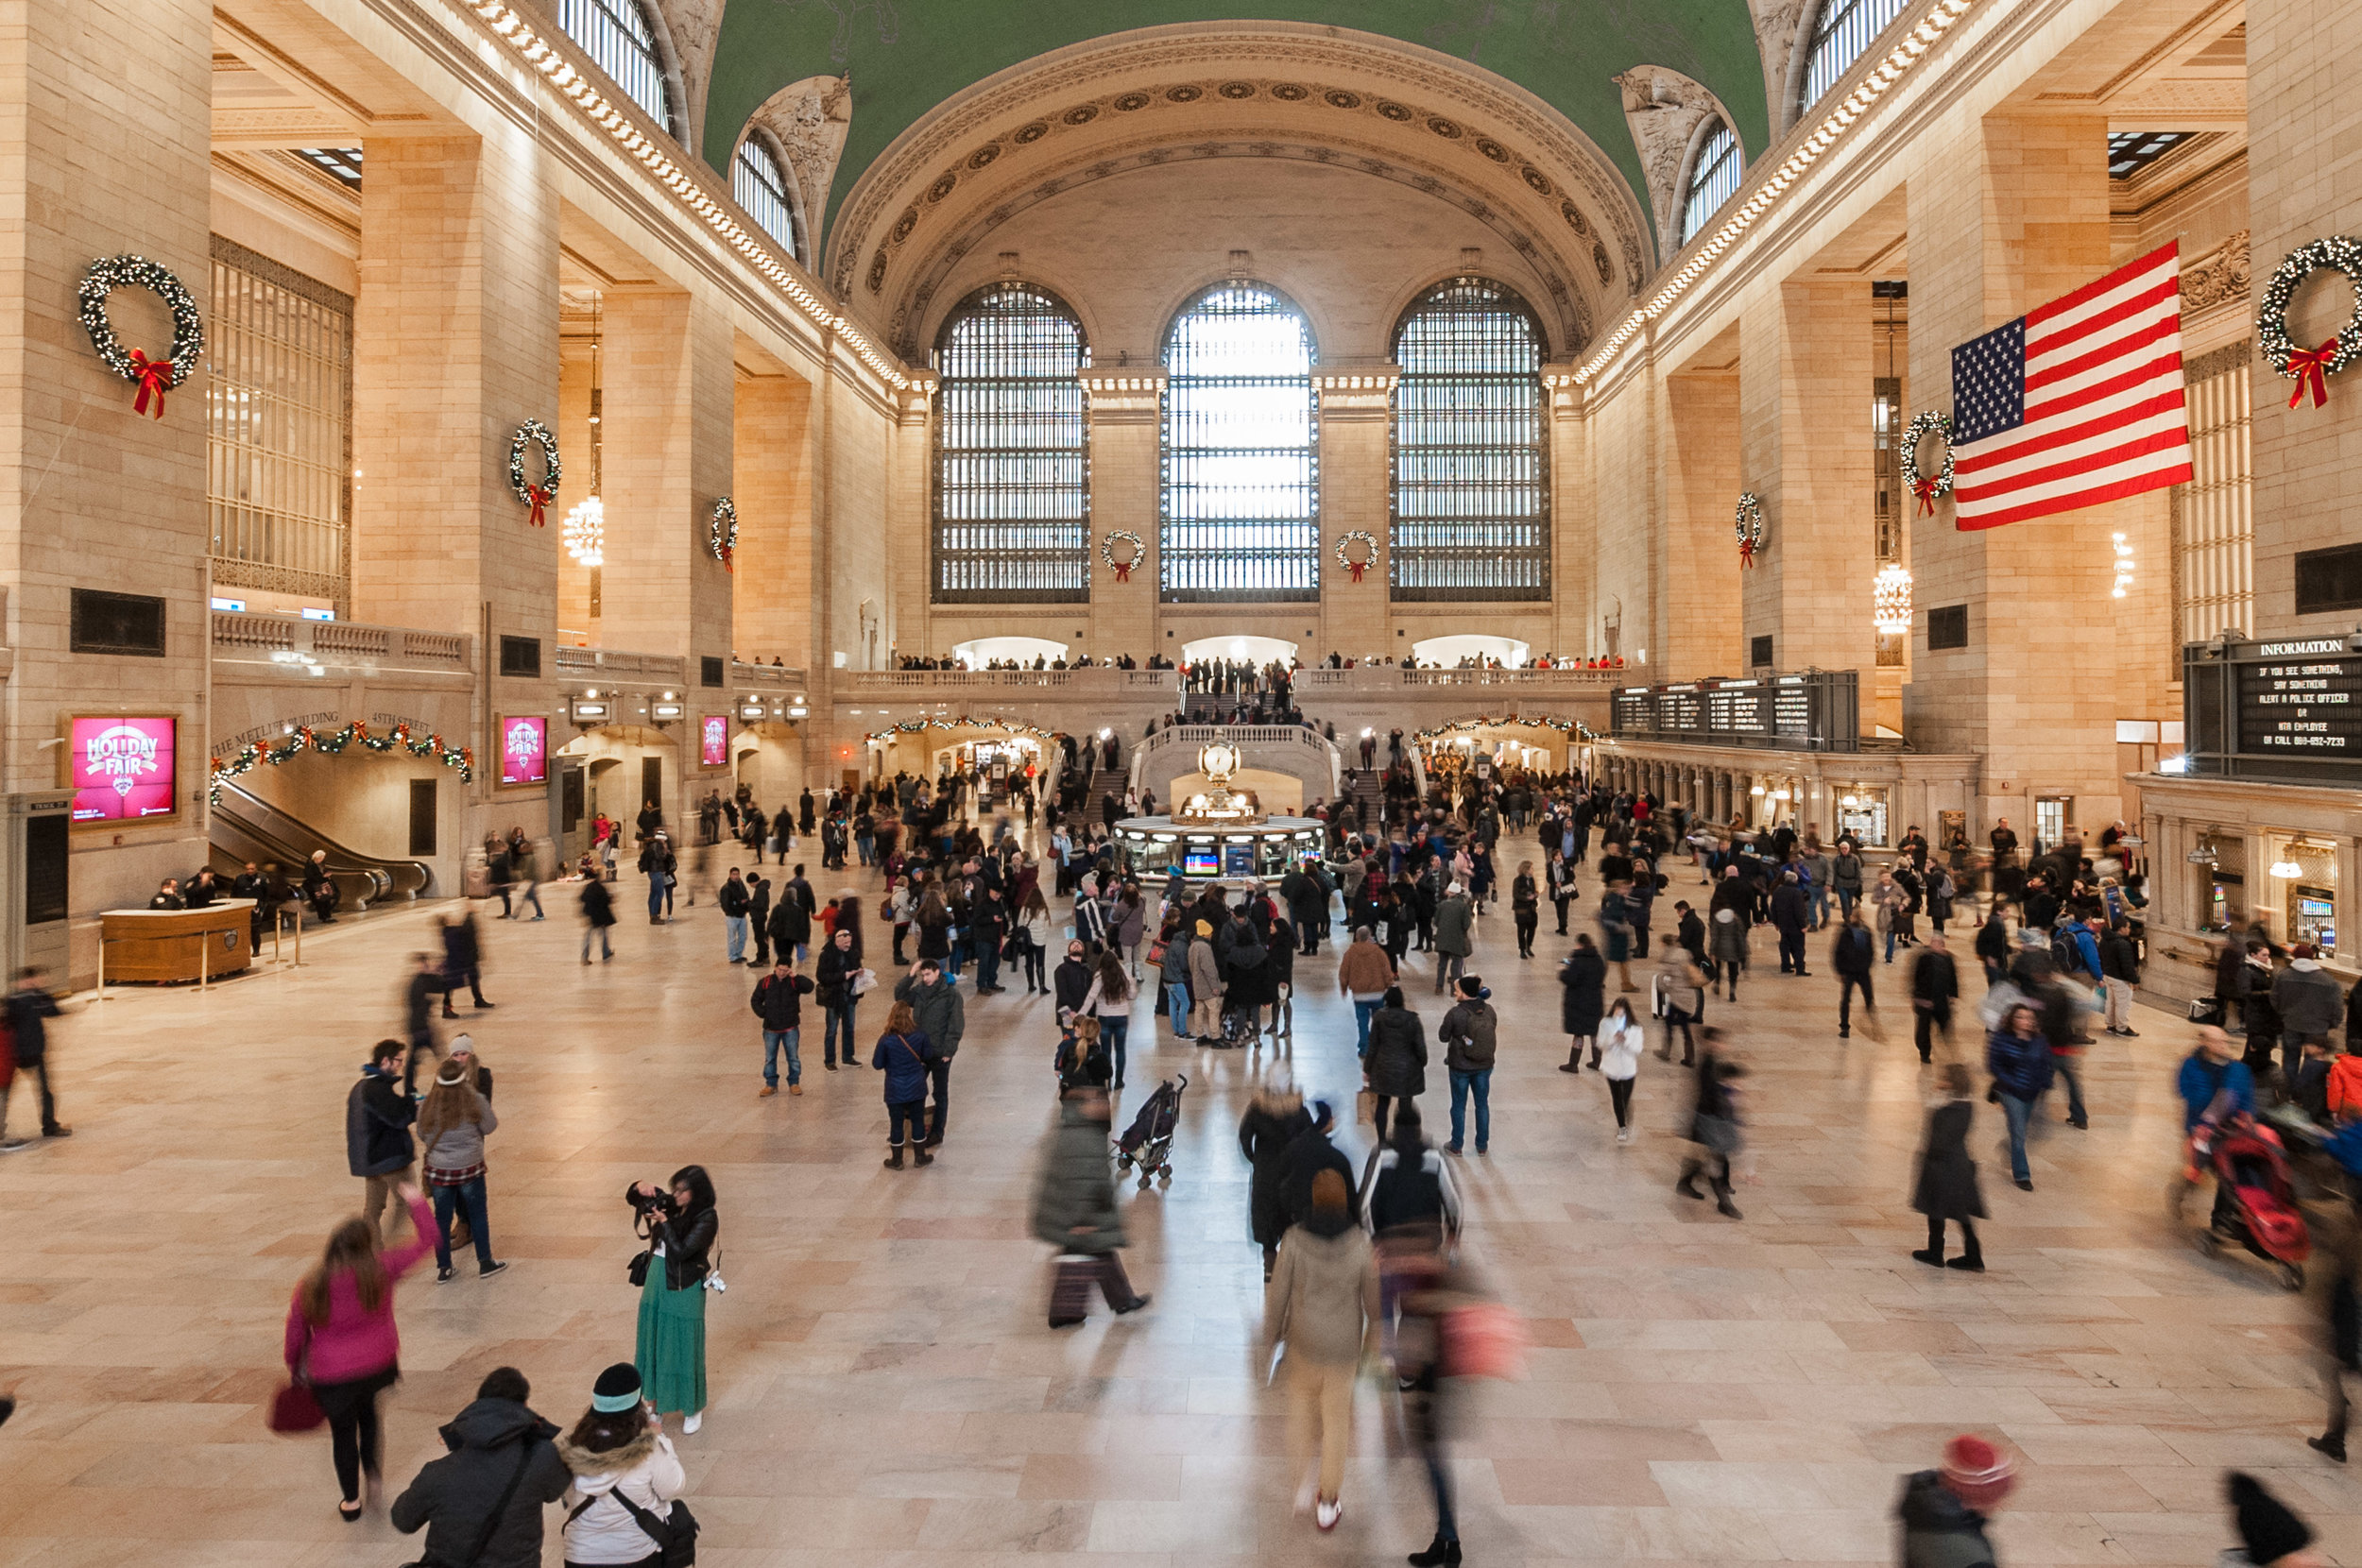 Grand Central Station Dec. 8th 2016-1.jpg